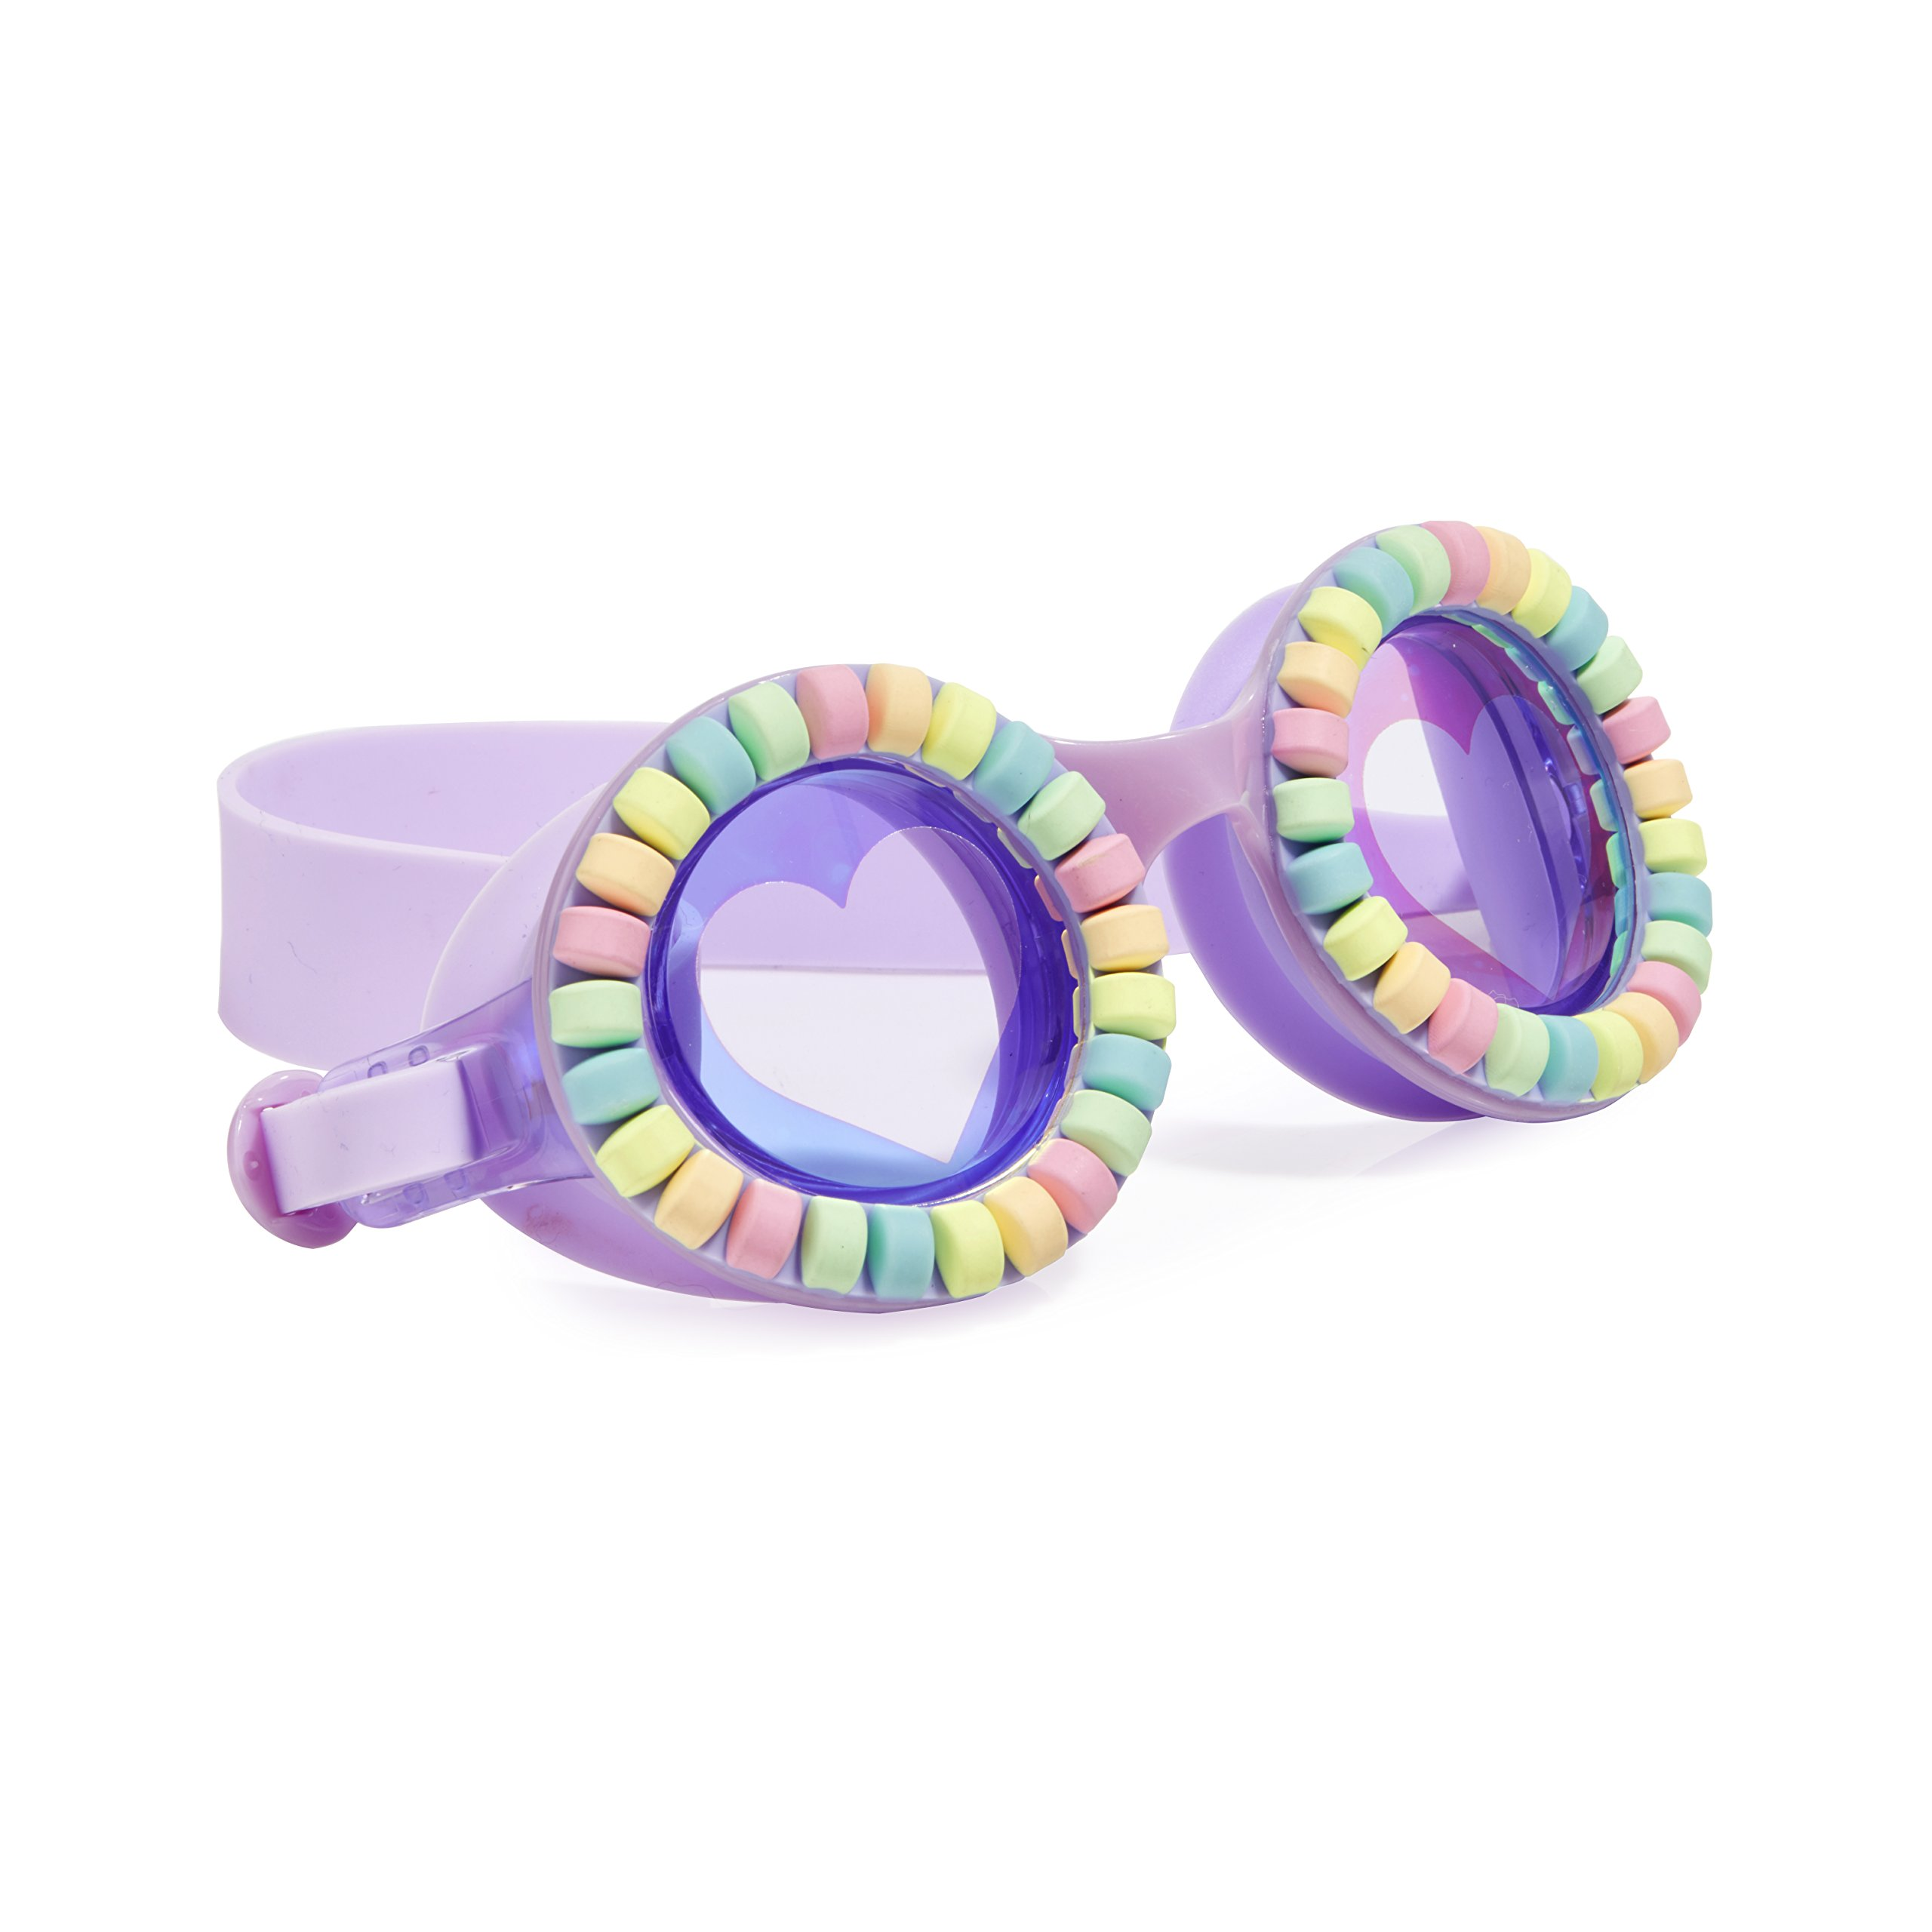 Swimming Goggles For Kids by Bling2O - Anti Fog, No Leak, Non Slip and UV Protection - Lovely Lilac Colored Fun Water Accessory Includes Hard Case